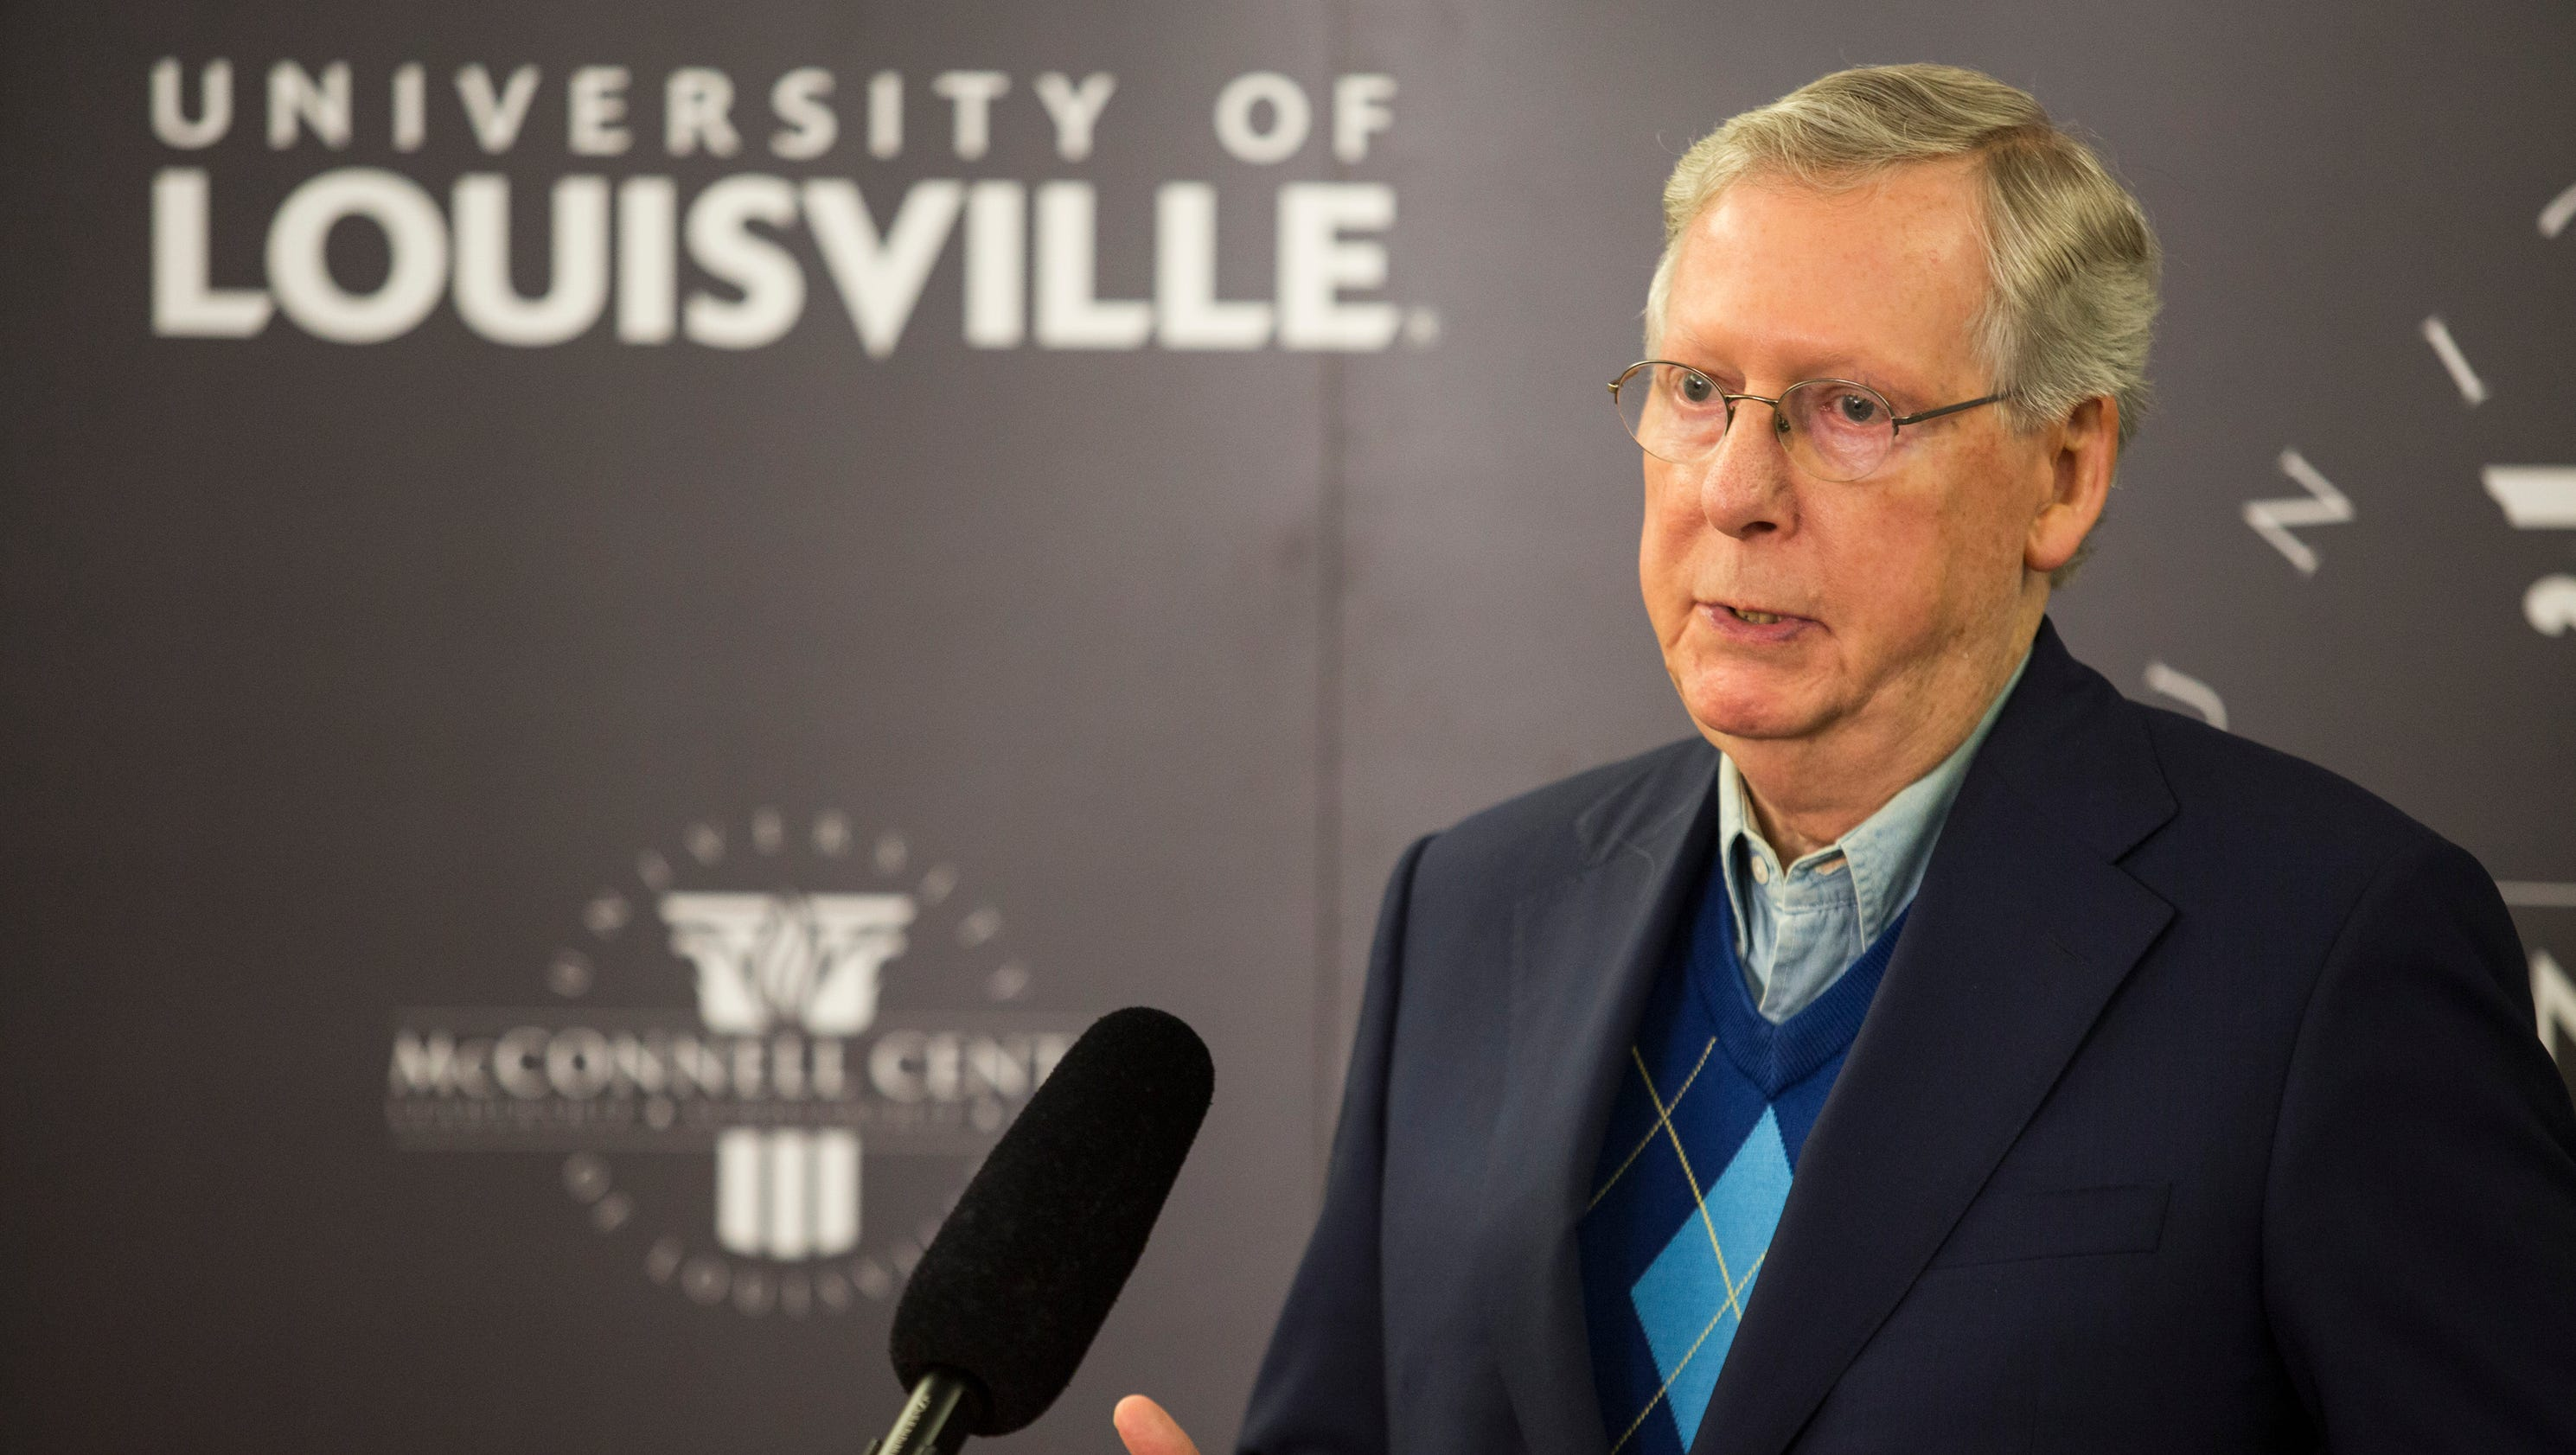 McConnell: Coal jobs a 'private sector activity'